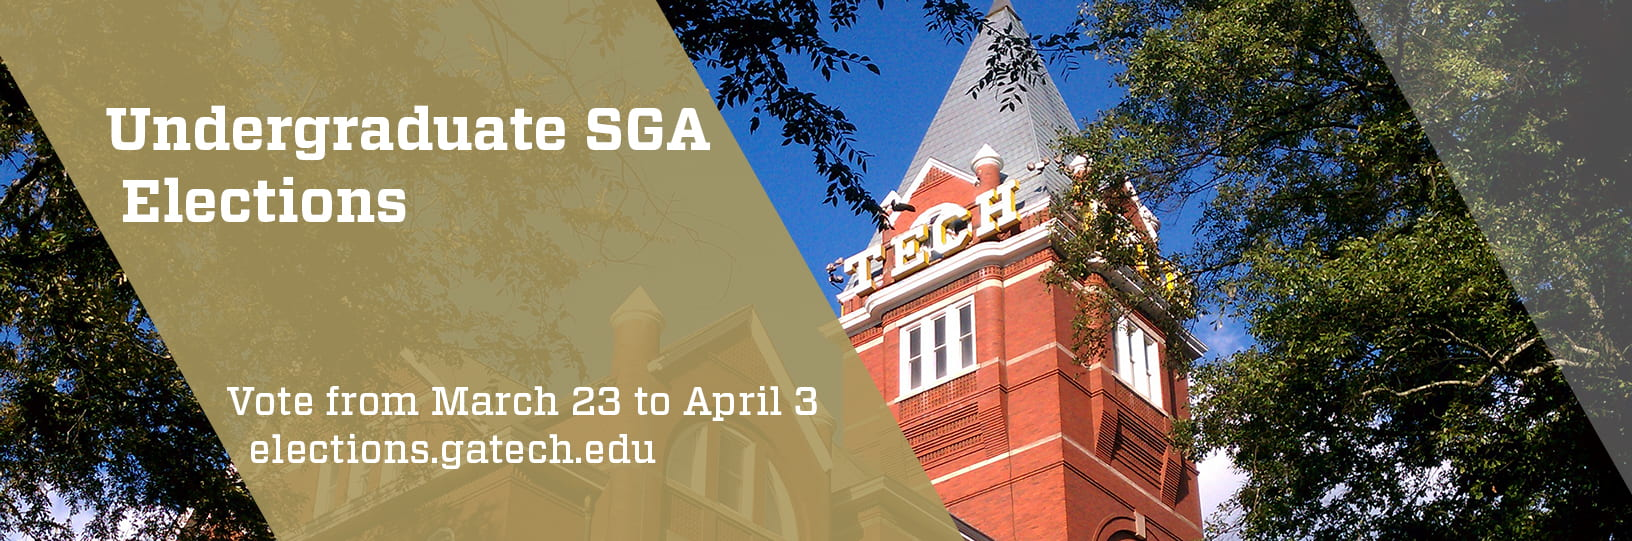 Undergraduate SGA Elections. Vote from March 23 to April 3 at elections.gatech.edu